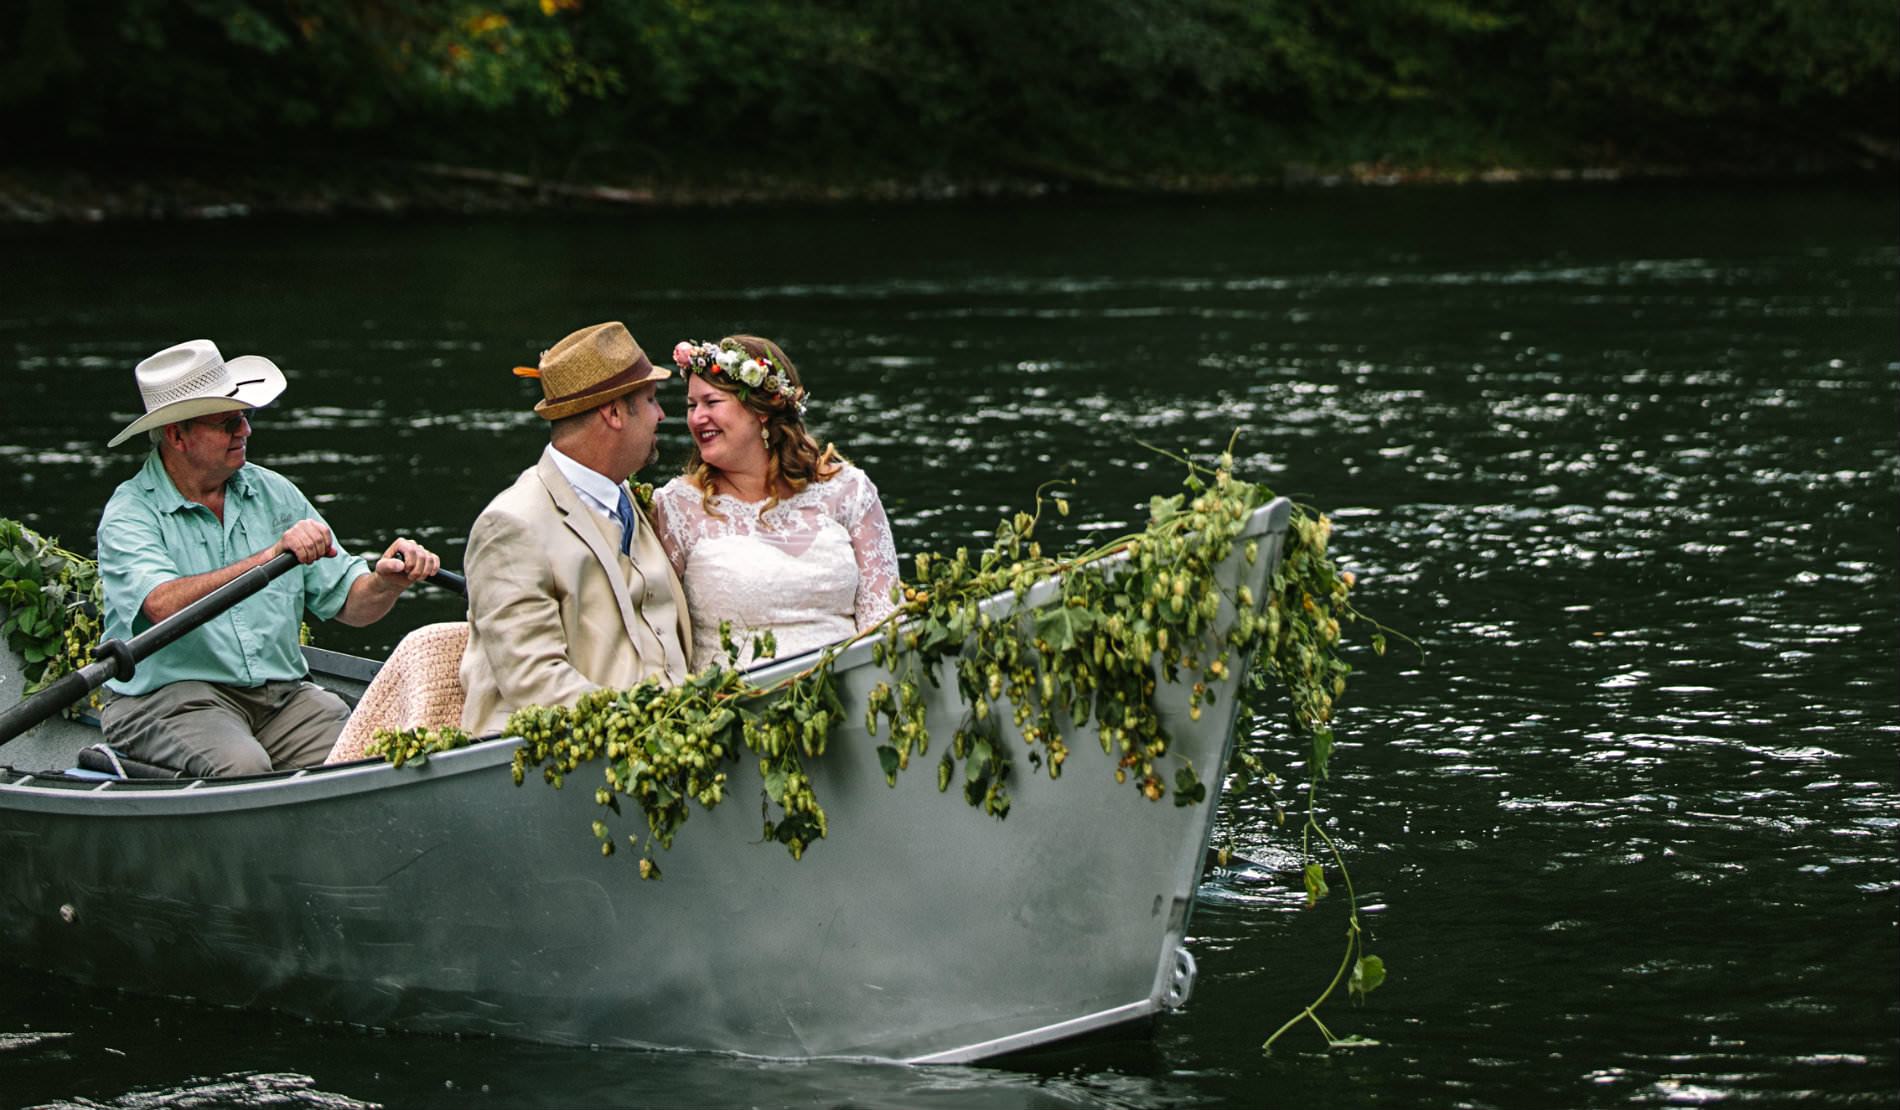 Happy Bride and Groom being rowed in a metal rowboat with yellow flowers decked on front